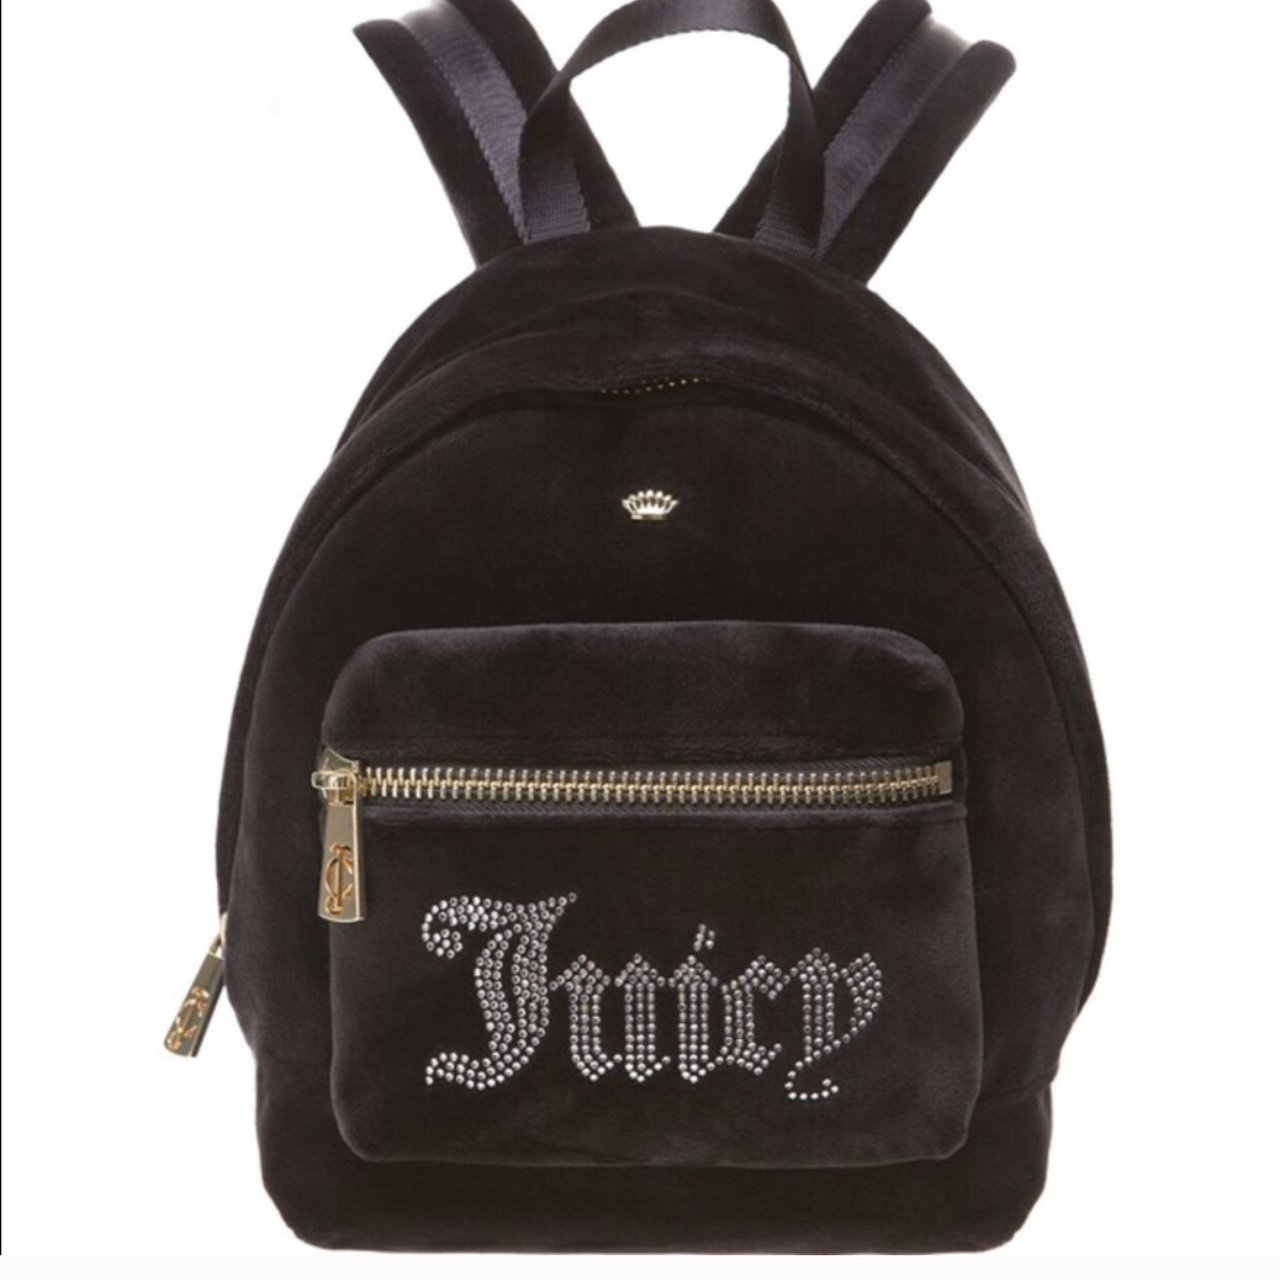 bae9491382 Juicy Couture Luxe Velour Mini Backpack Brand New - Never - - Depop